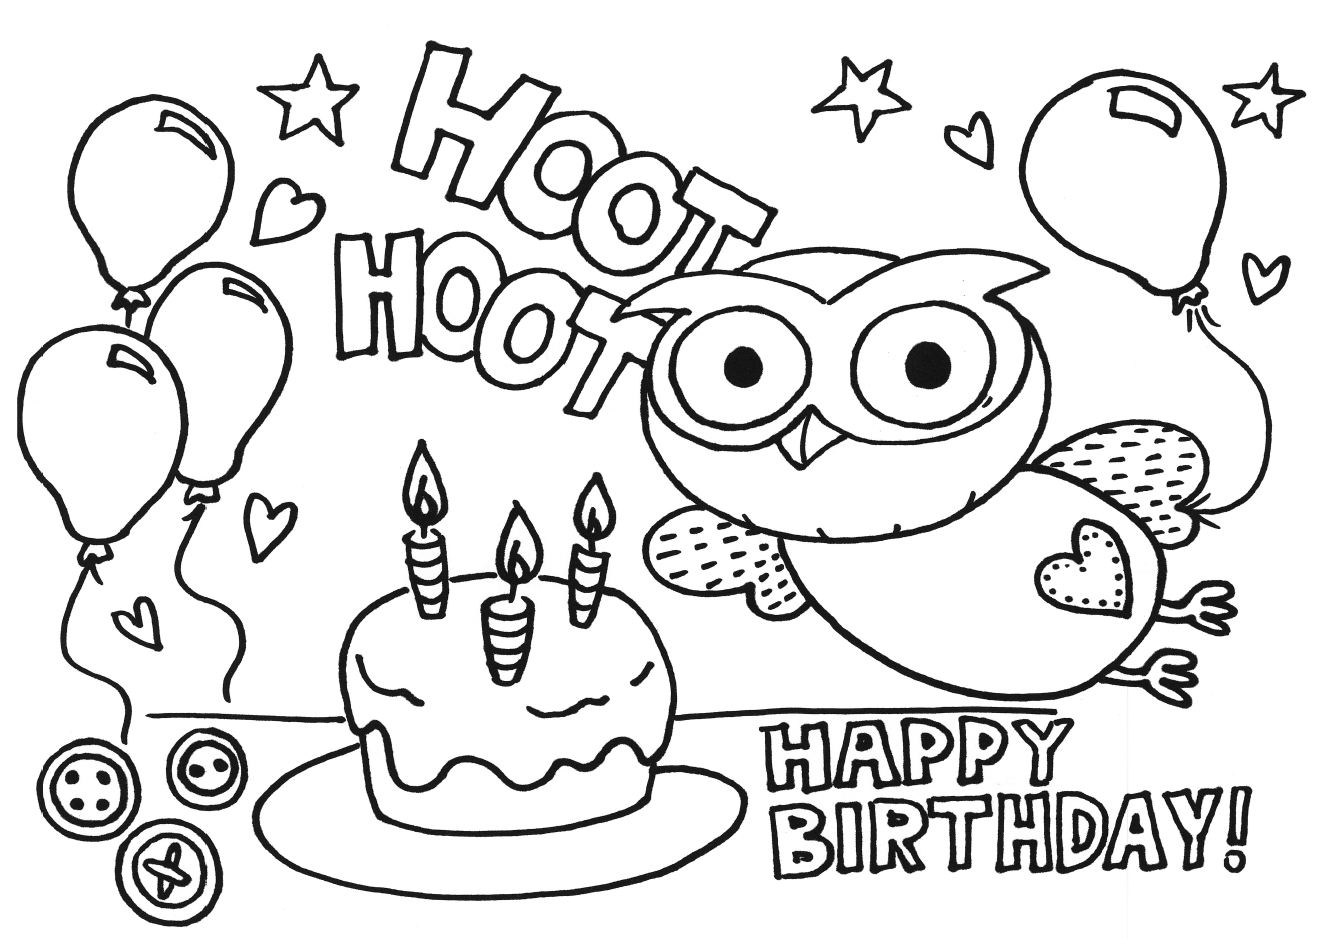 birthday coloring pages - printable happy birthday coloring pages